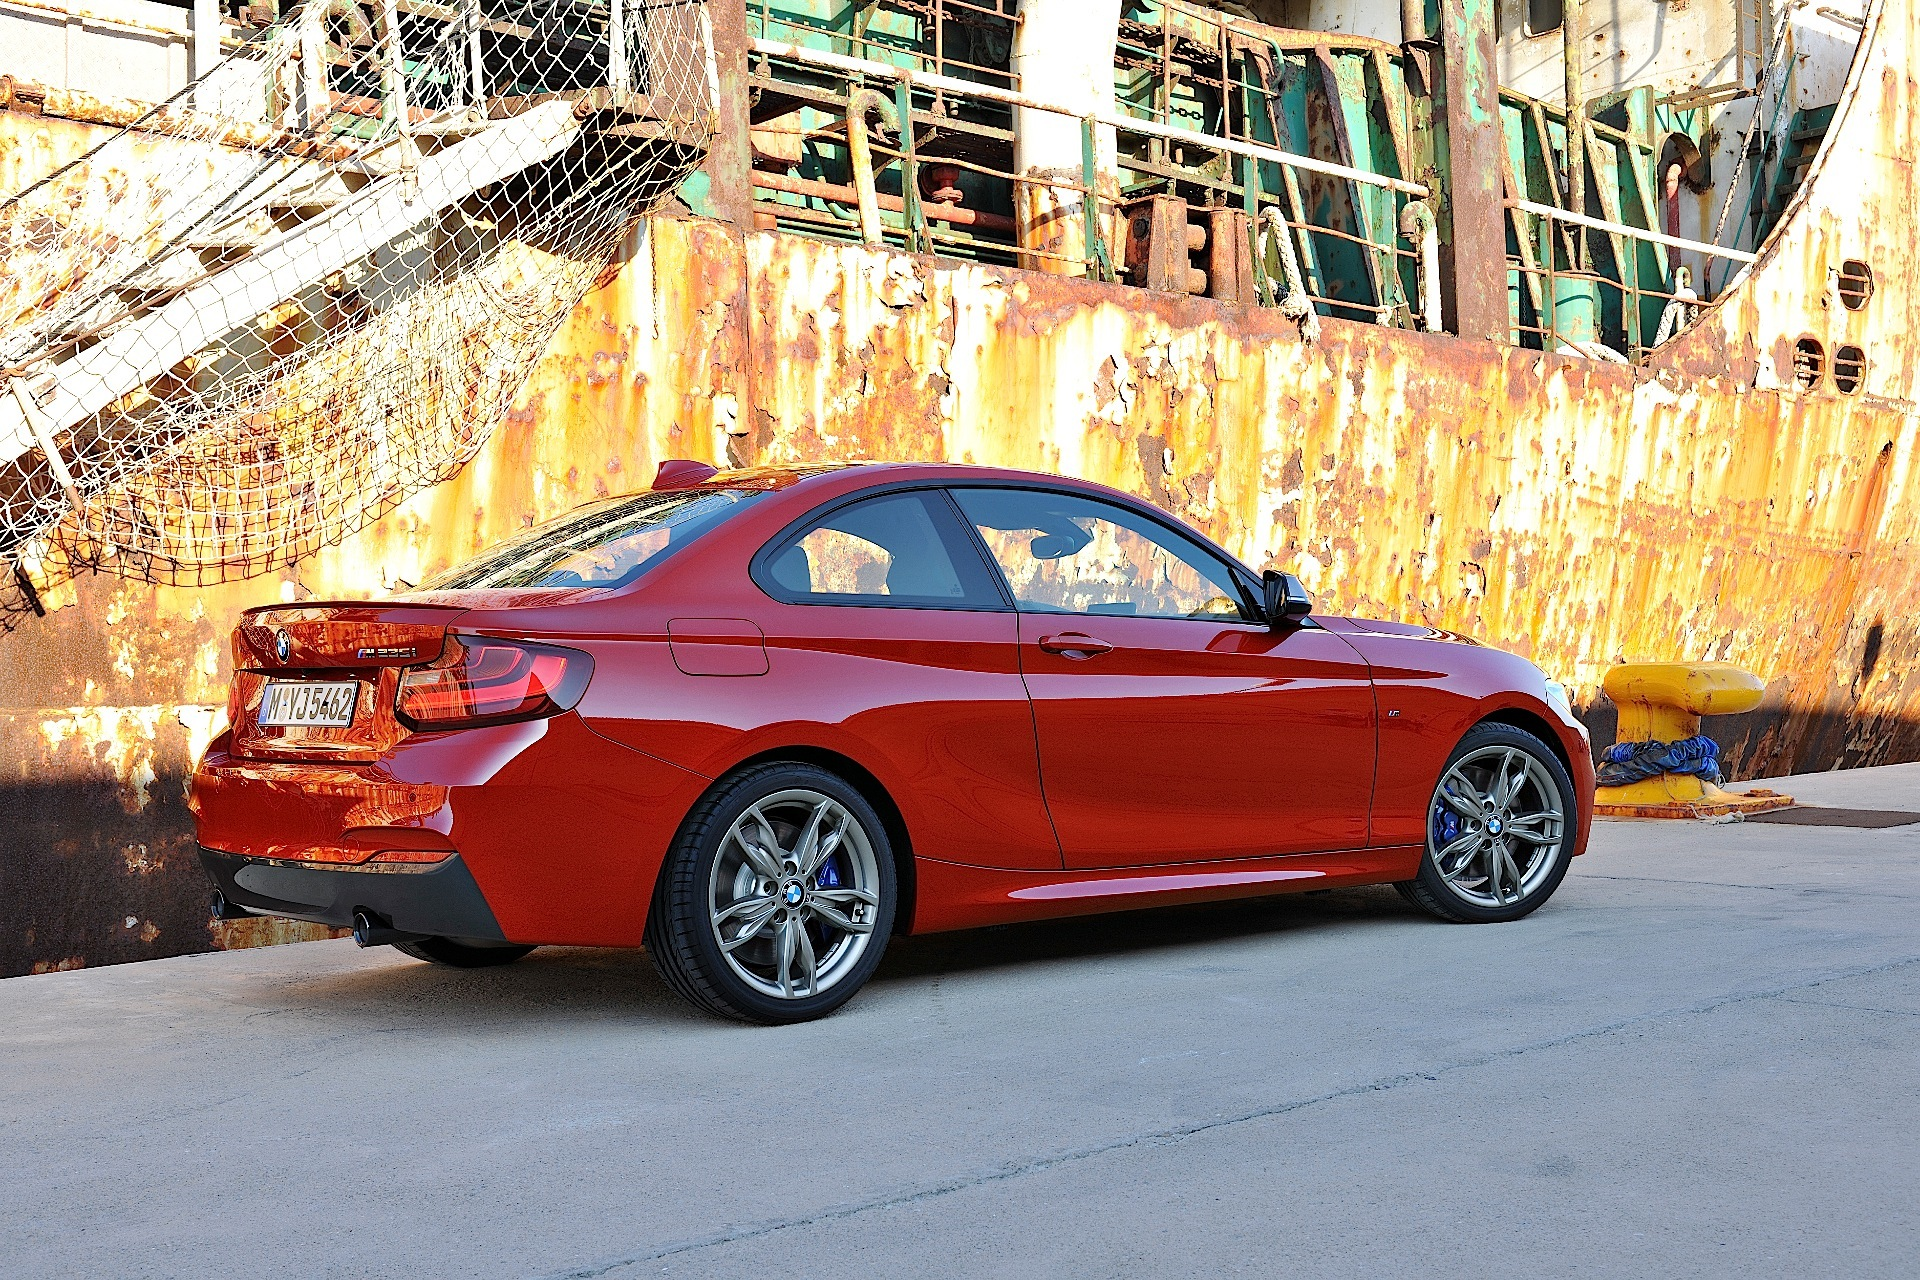 BMW 2 series 228i 2013 photo - 11